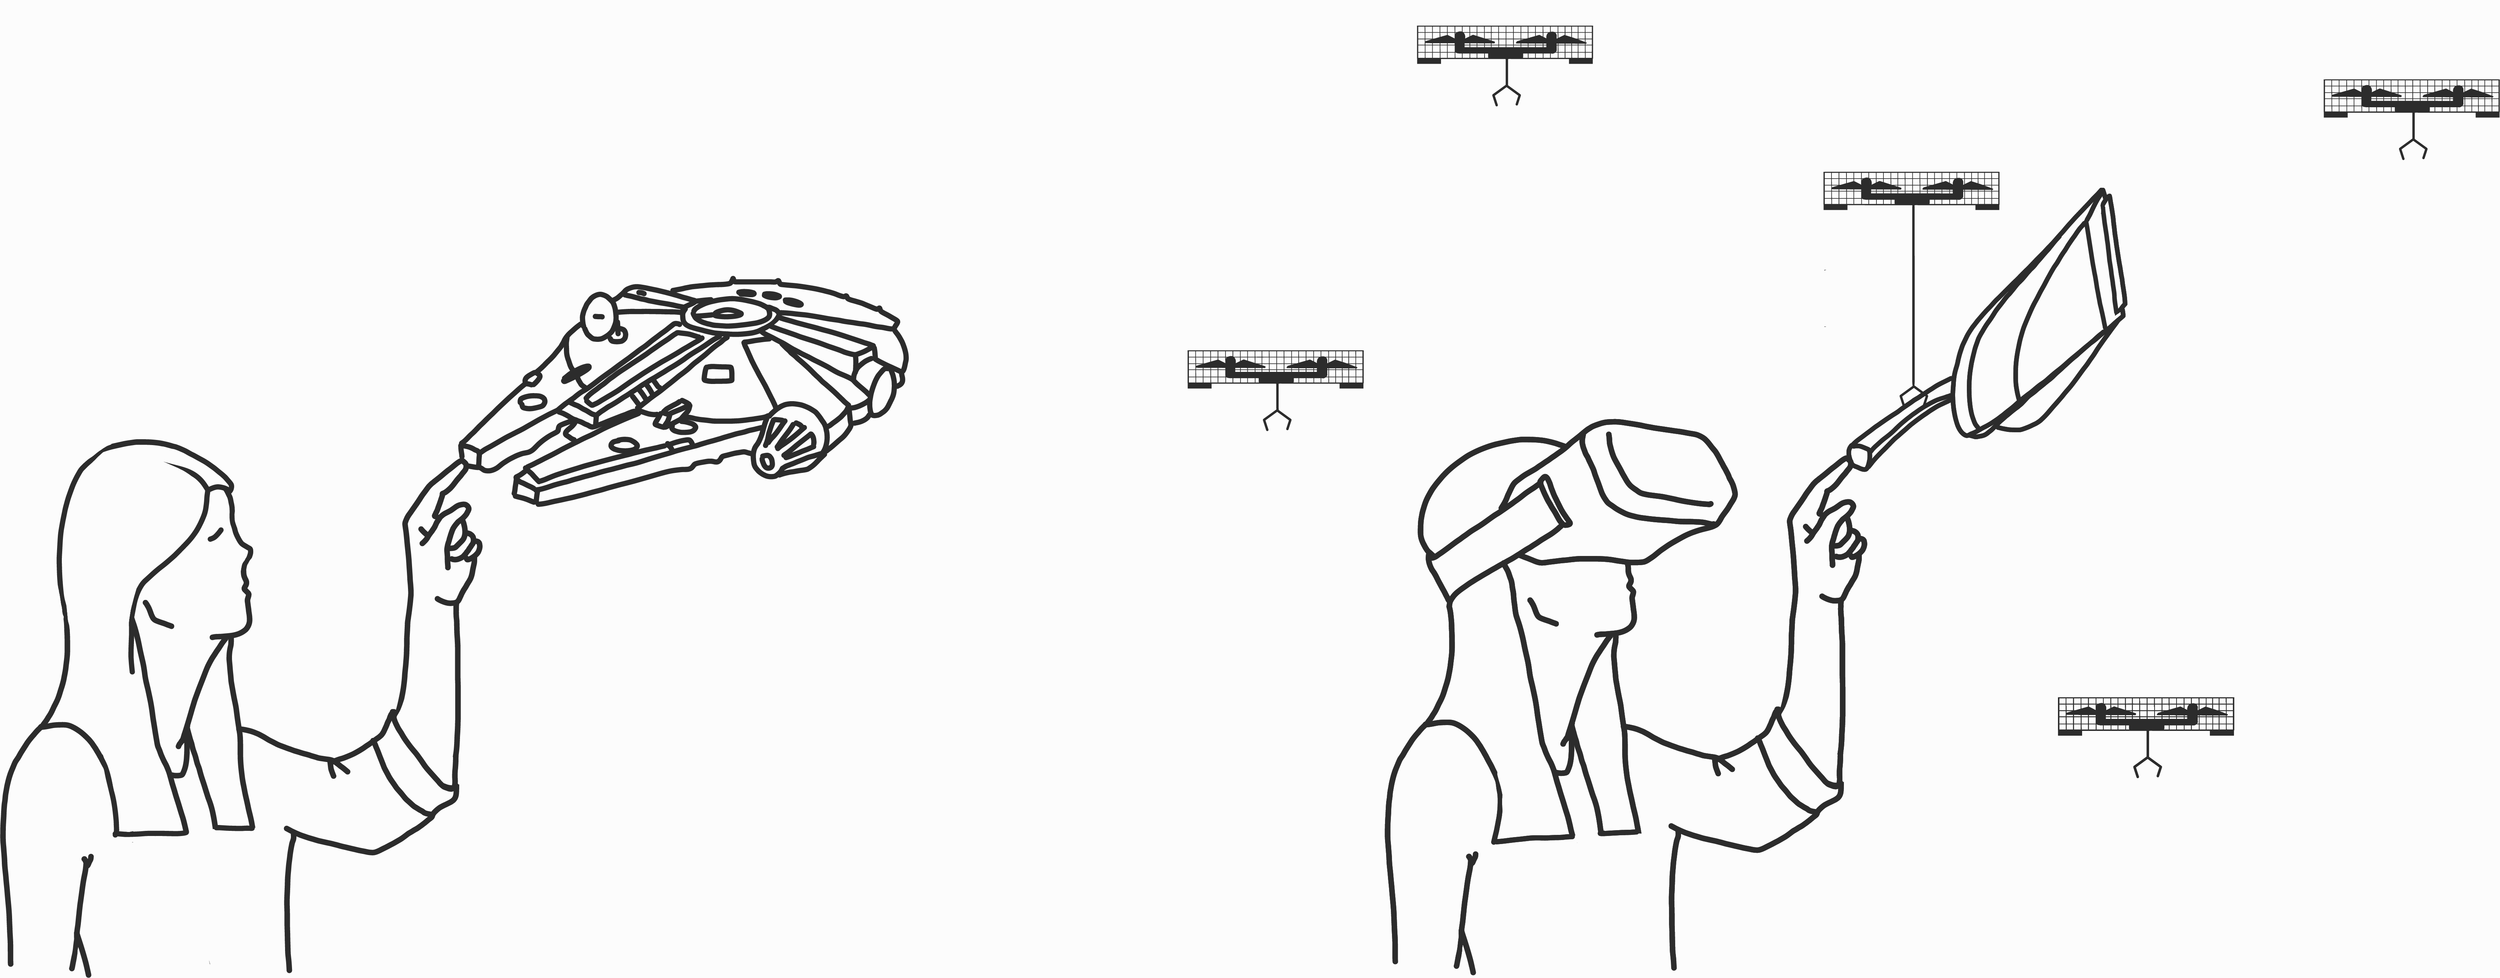 Left: In virtual reality, user touching a virtual object. Right: In the real world, an object (with a similar shape) has been detected, picked up, and presented by one of the drones.